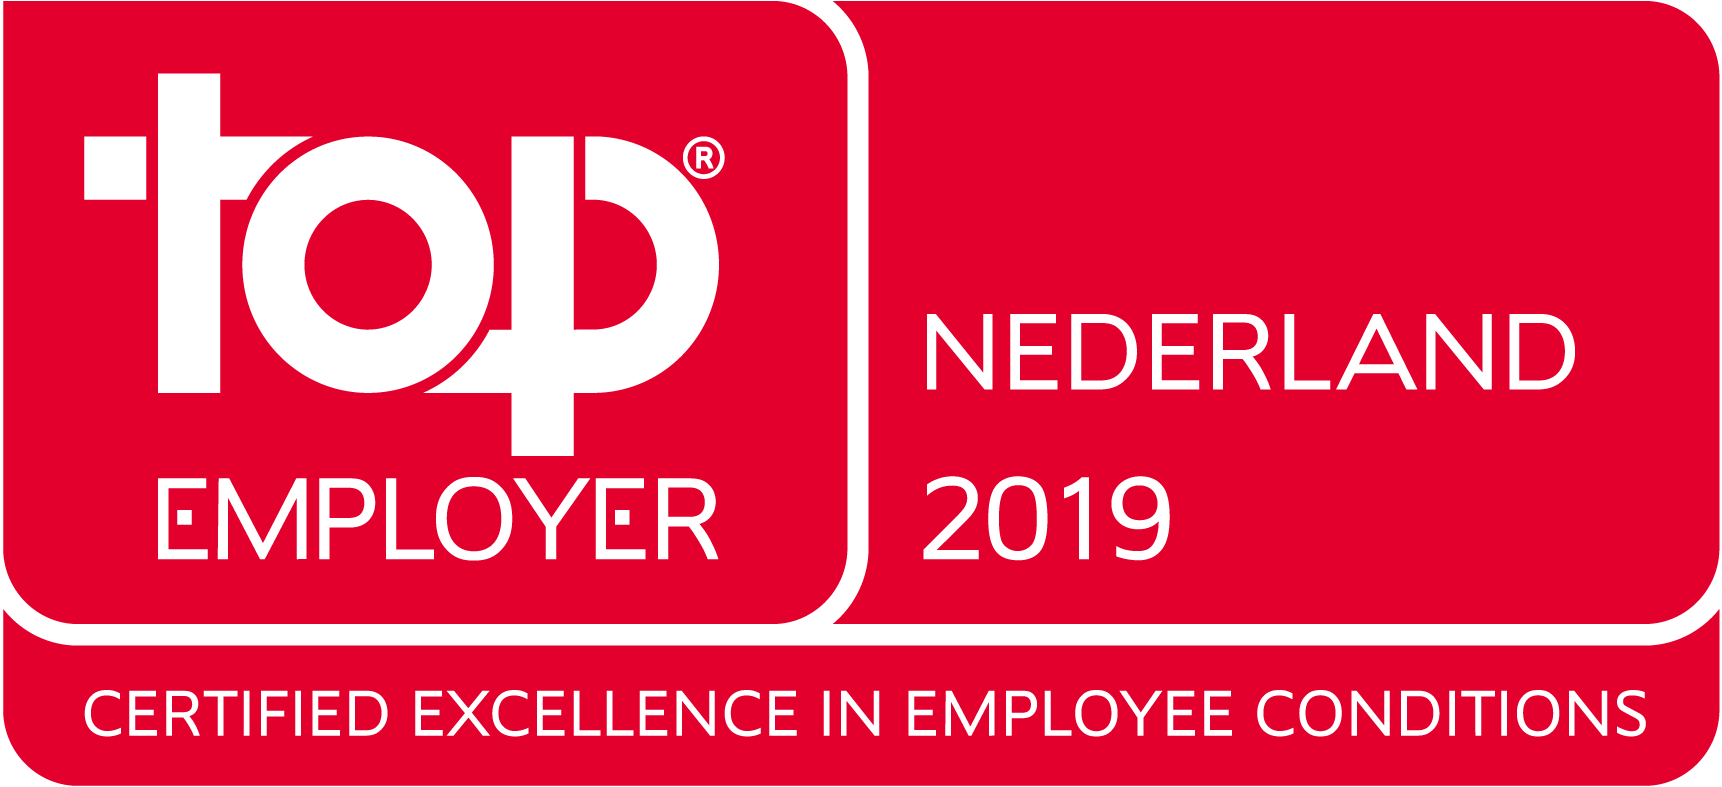 Top_Employer_Nederland_2019